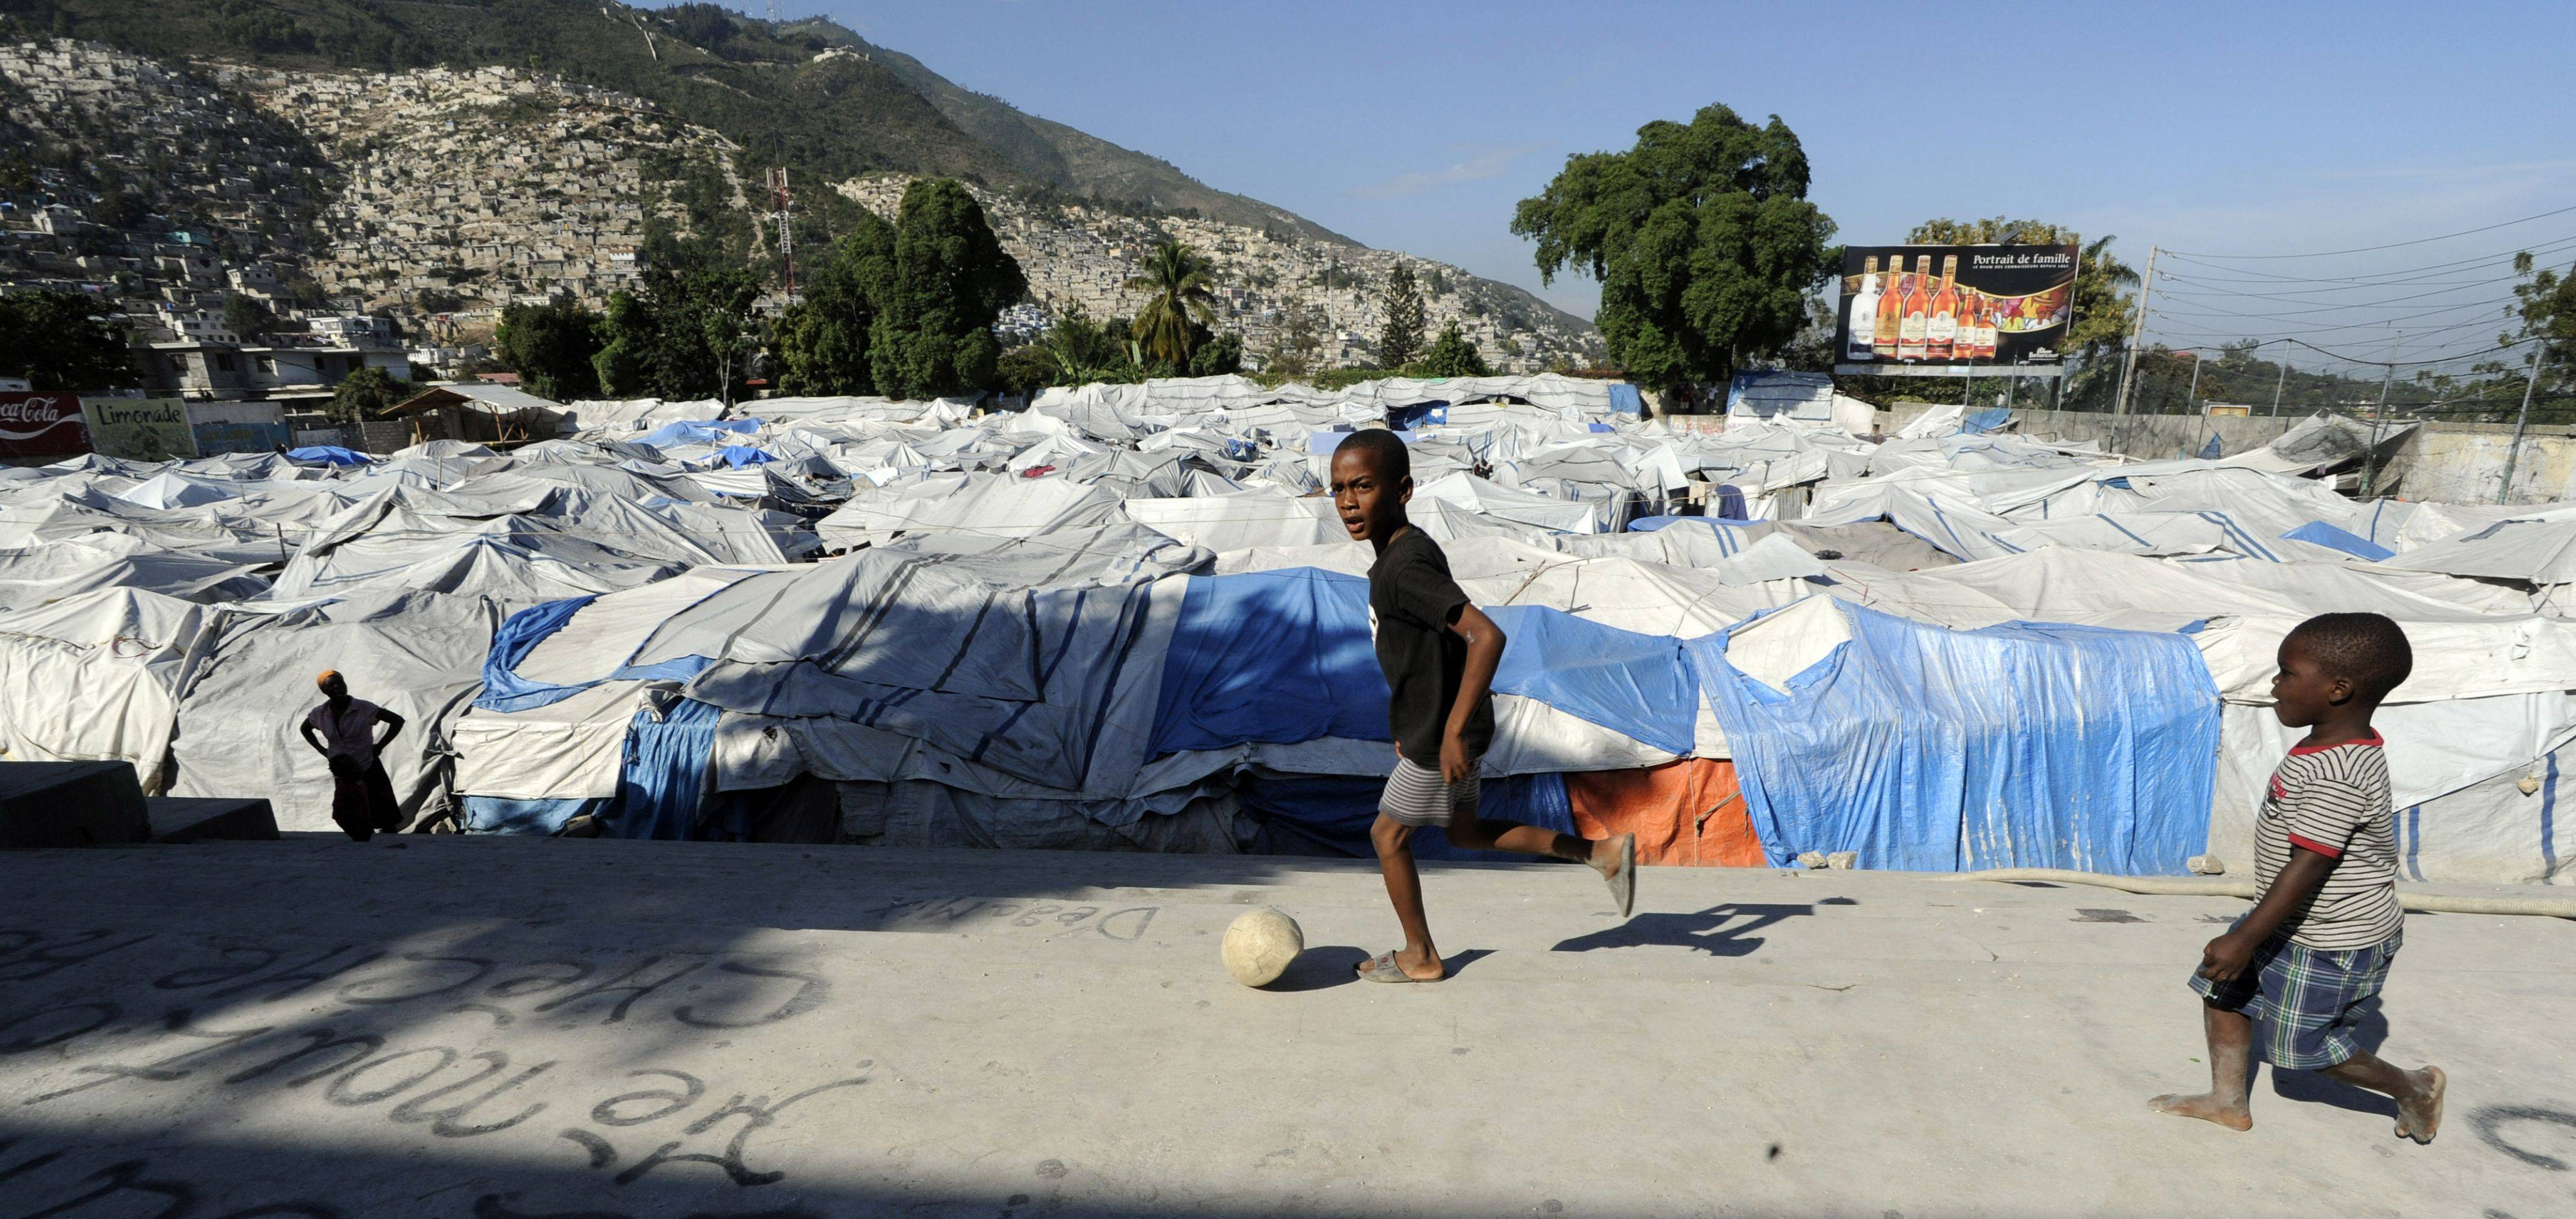 Kids play with a flatten soccer ball in tent city in Port-au-Prince as houses dot the hillside in the background.